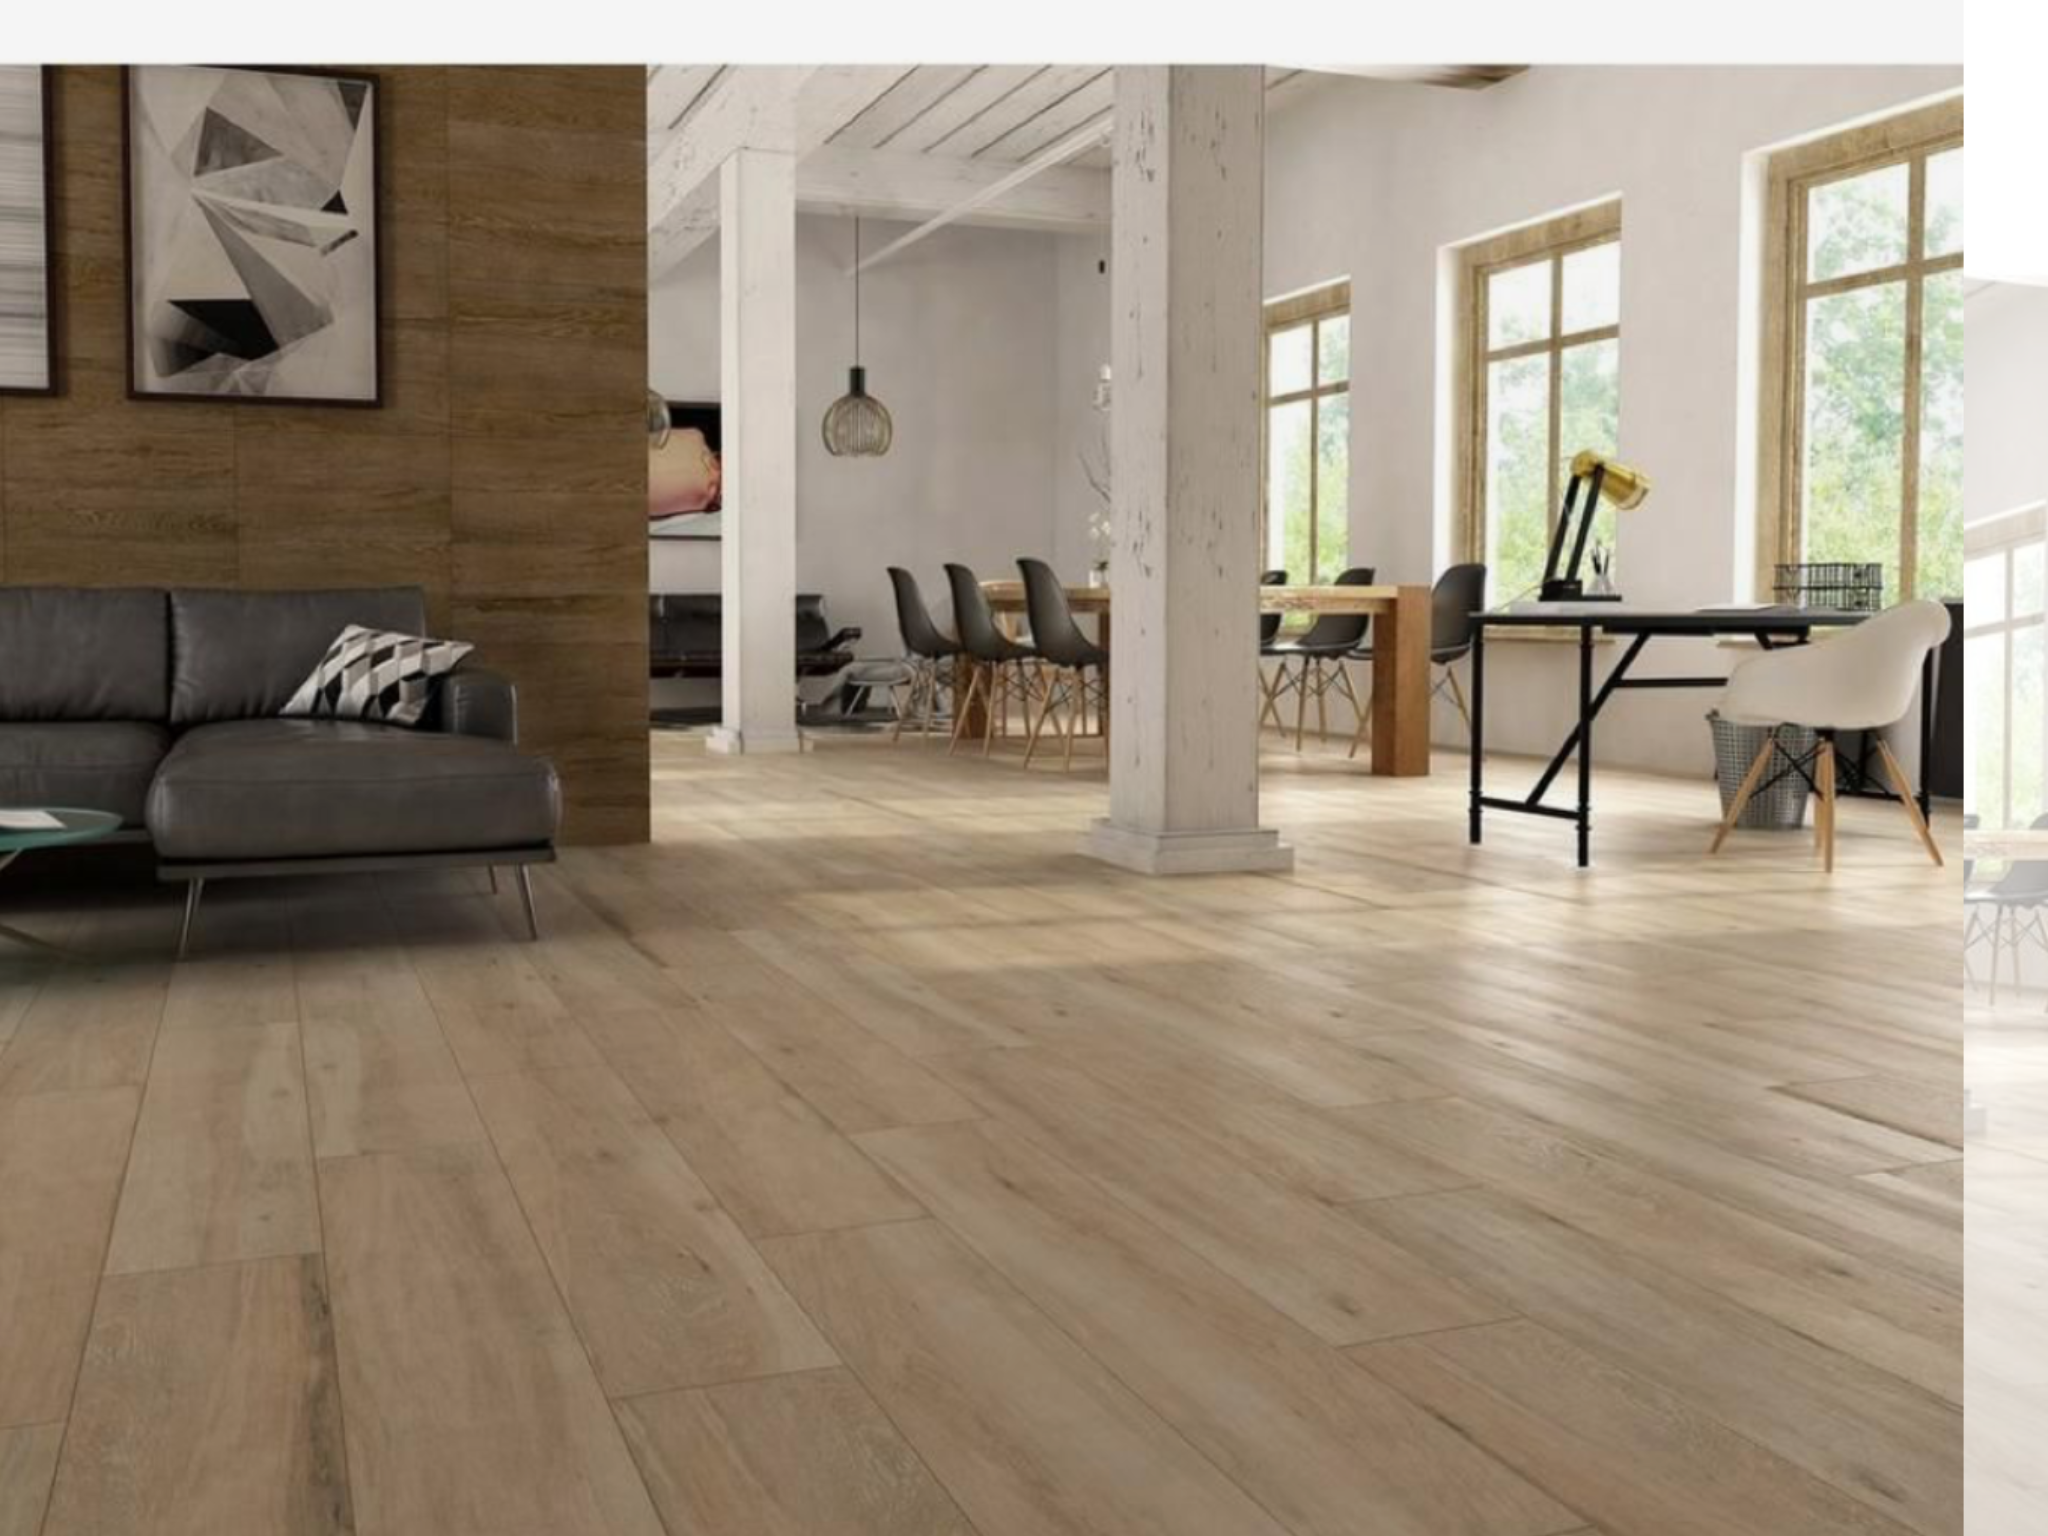 Pin by Shirley Smith on Fiddlers Bend Flooring, White